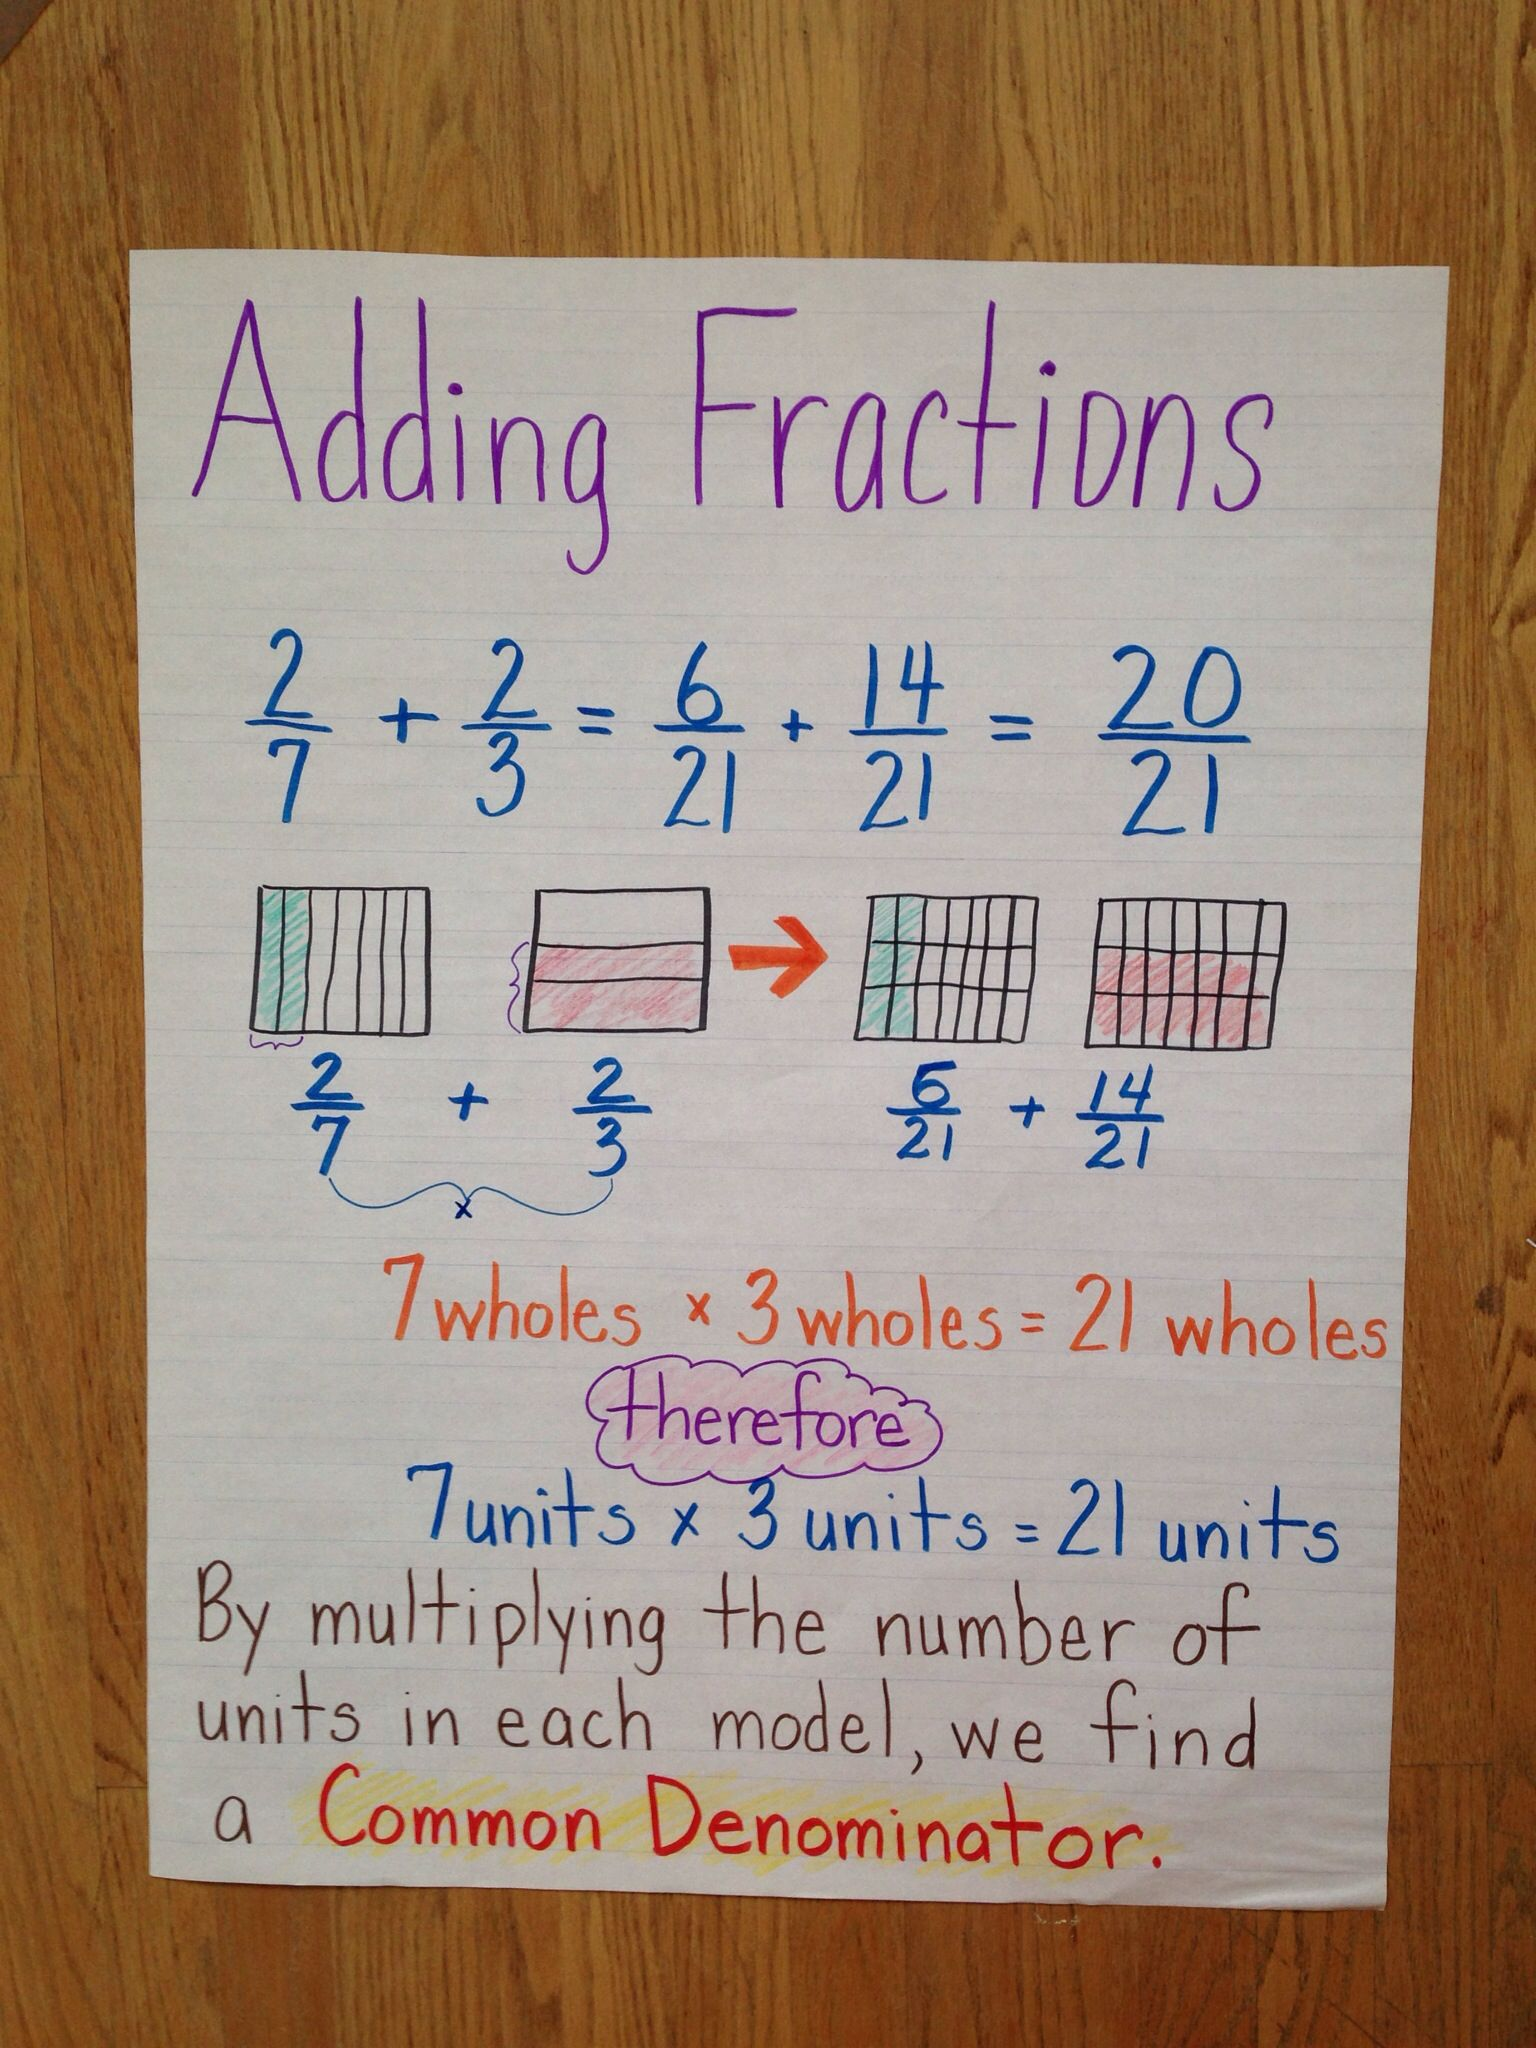 Adding Fractions 5th Grade Anchor Chartmon Core Engage Ny